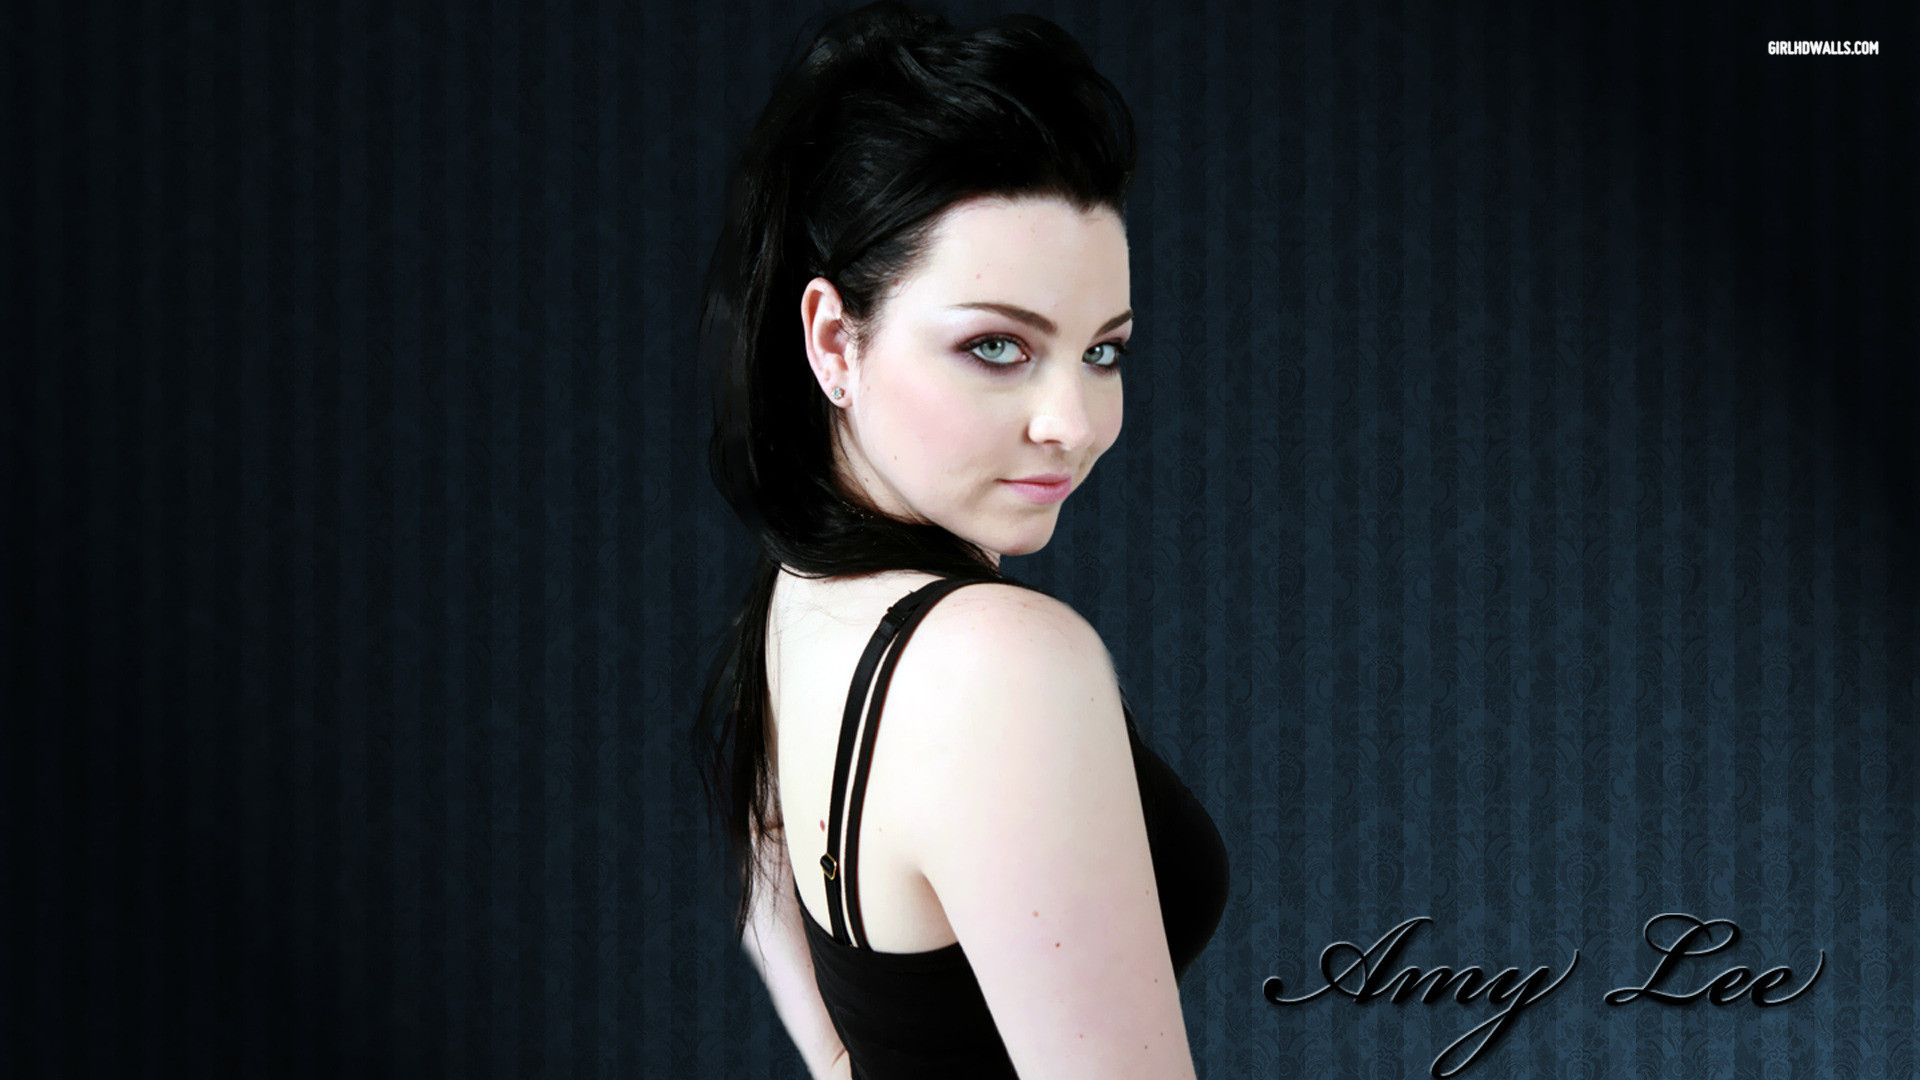 1920x1080 Amy Lynn Lee wallpaper #2813